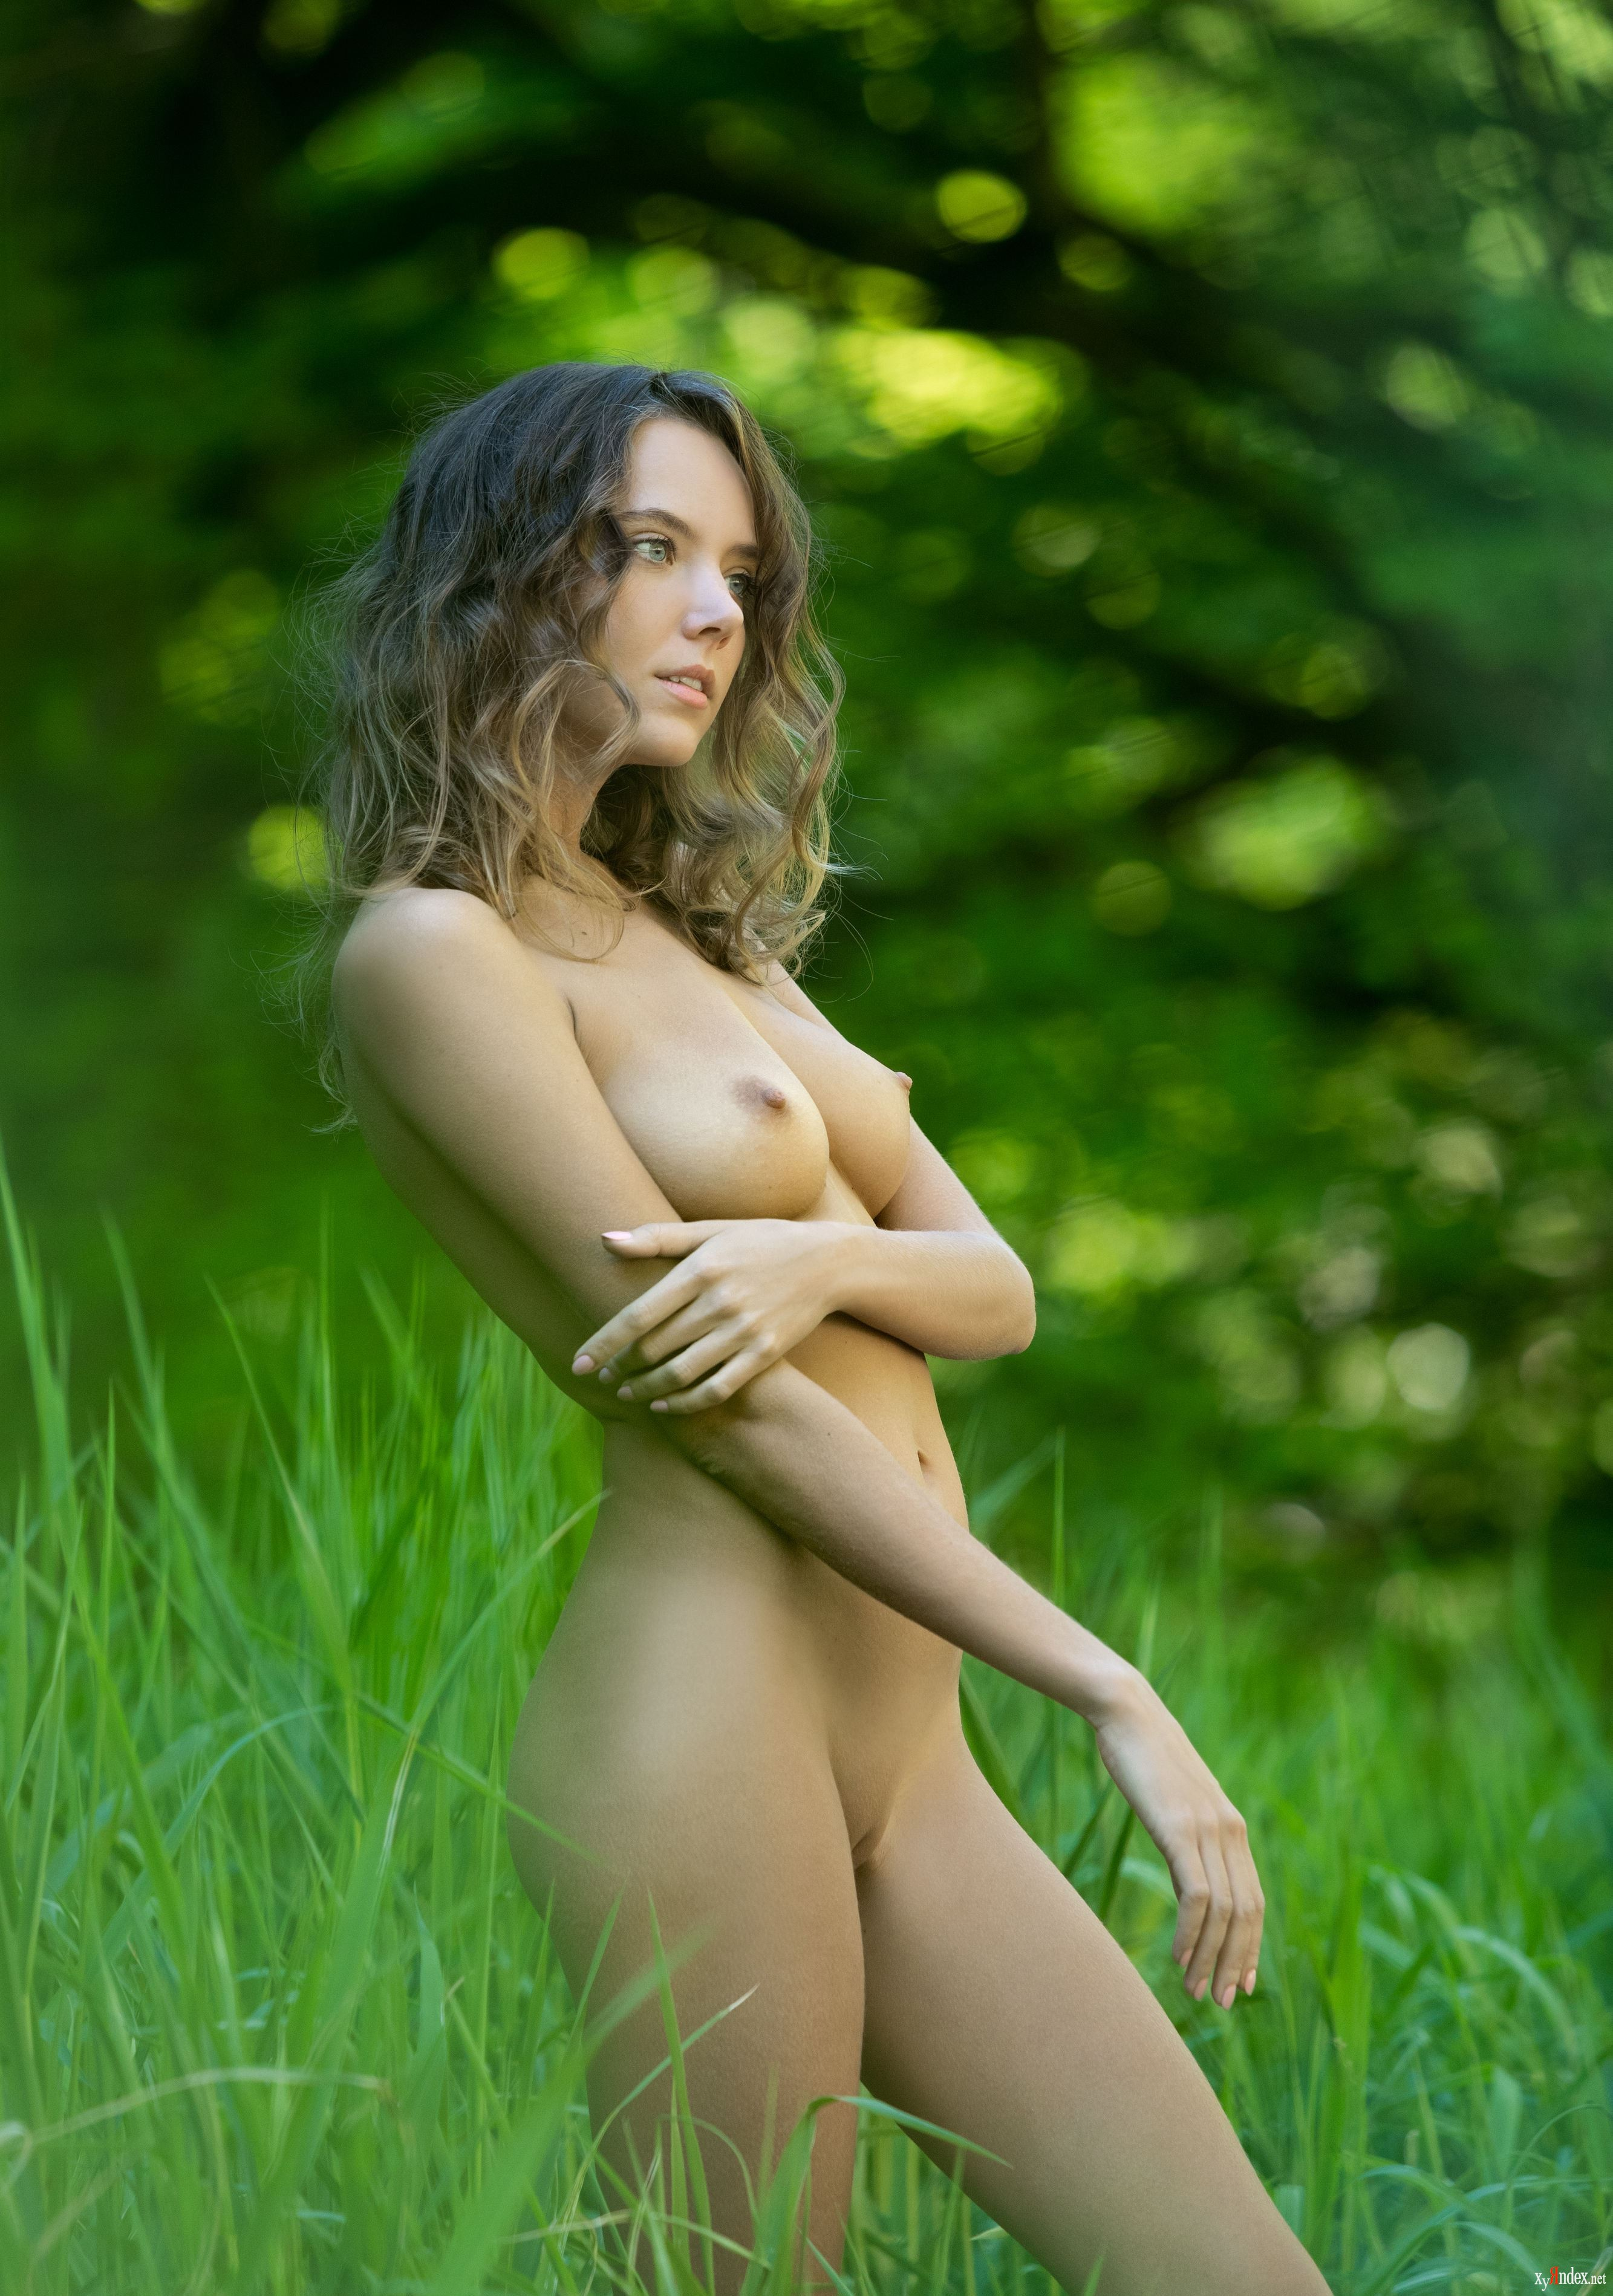 Ebony woman with natural naked chest willingly